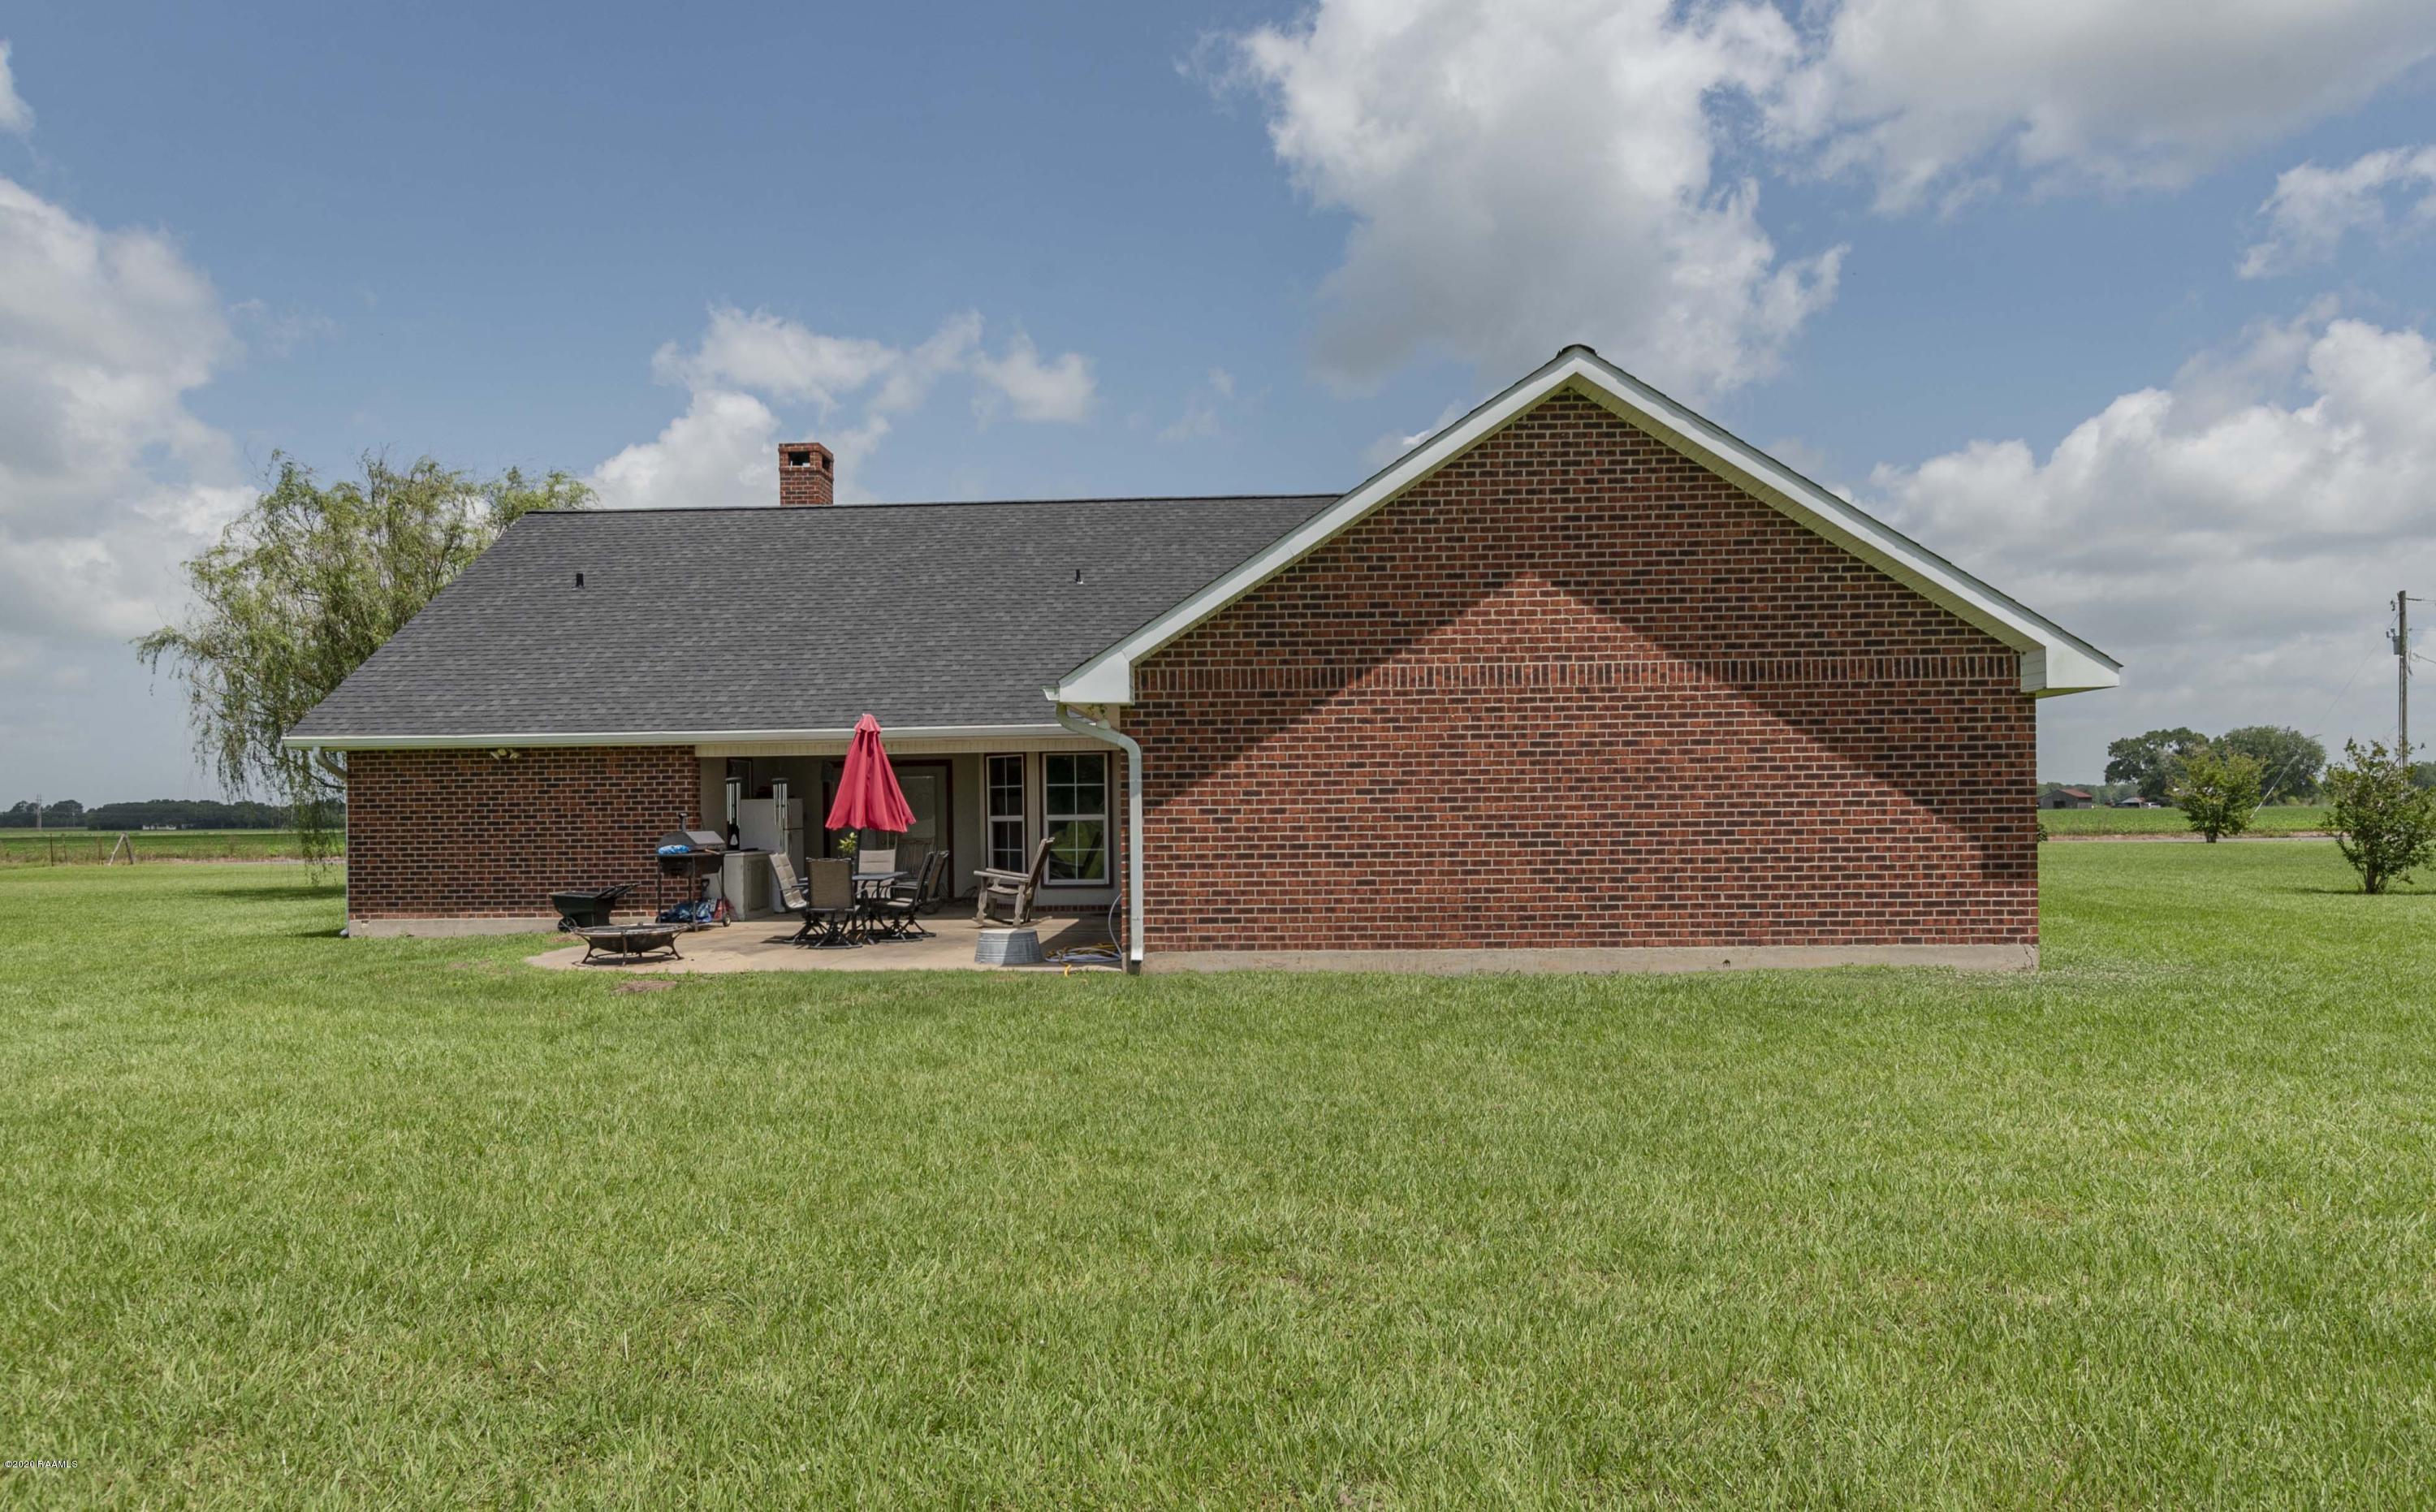 422 Eugene Soileau Road, Washington, LA 70589 Photo #31